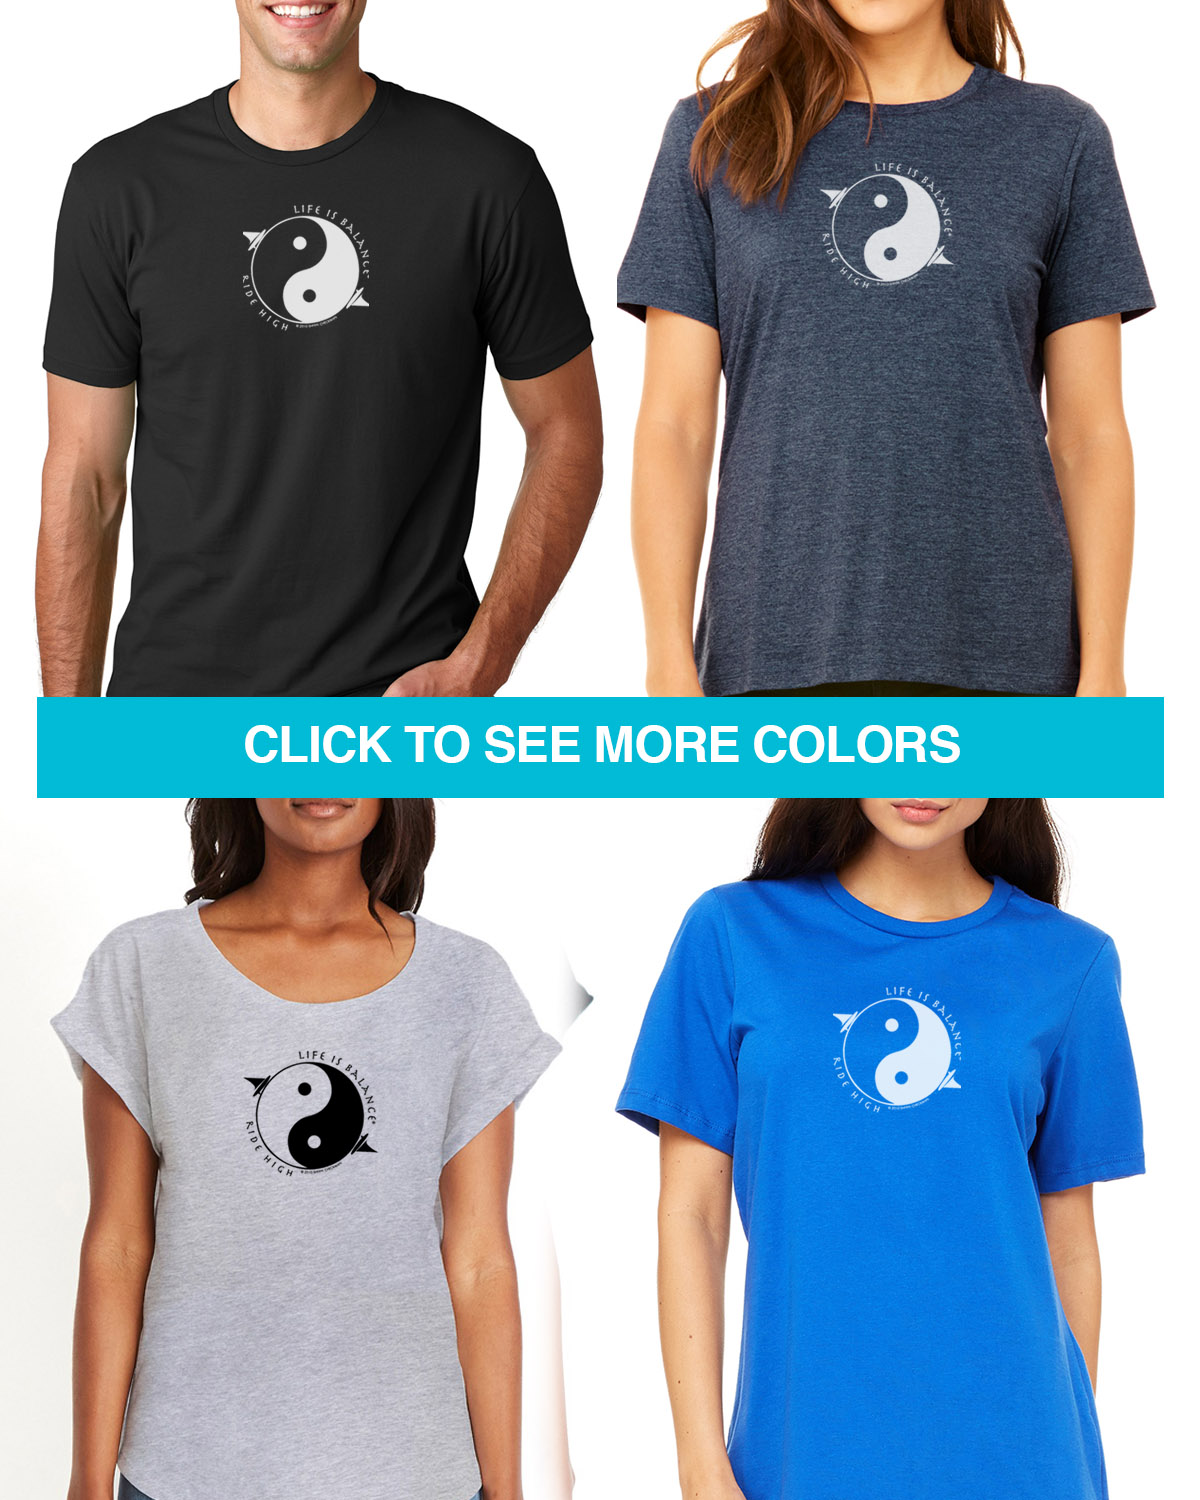 Short sleeve windsurfing t-shirts for Men and Women.